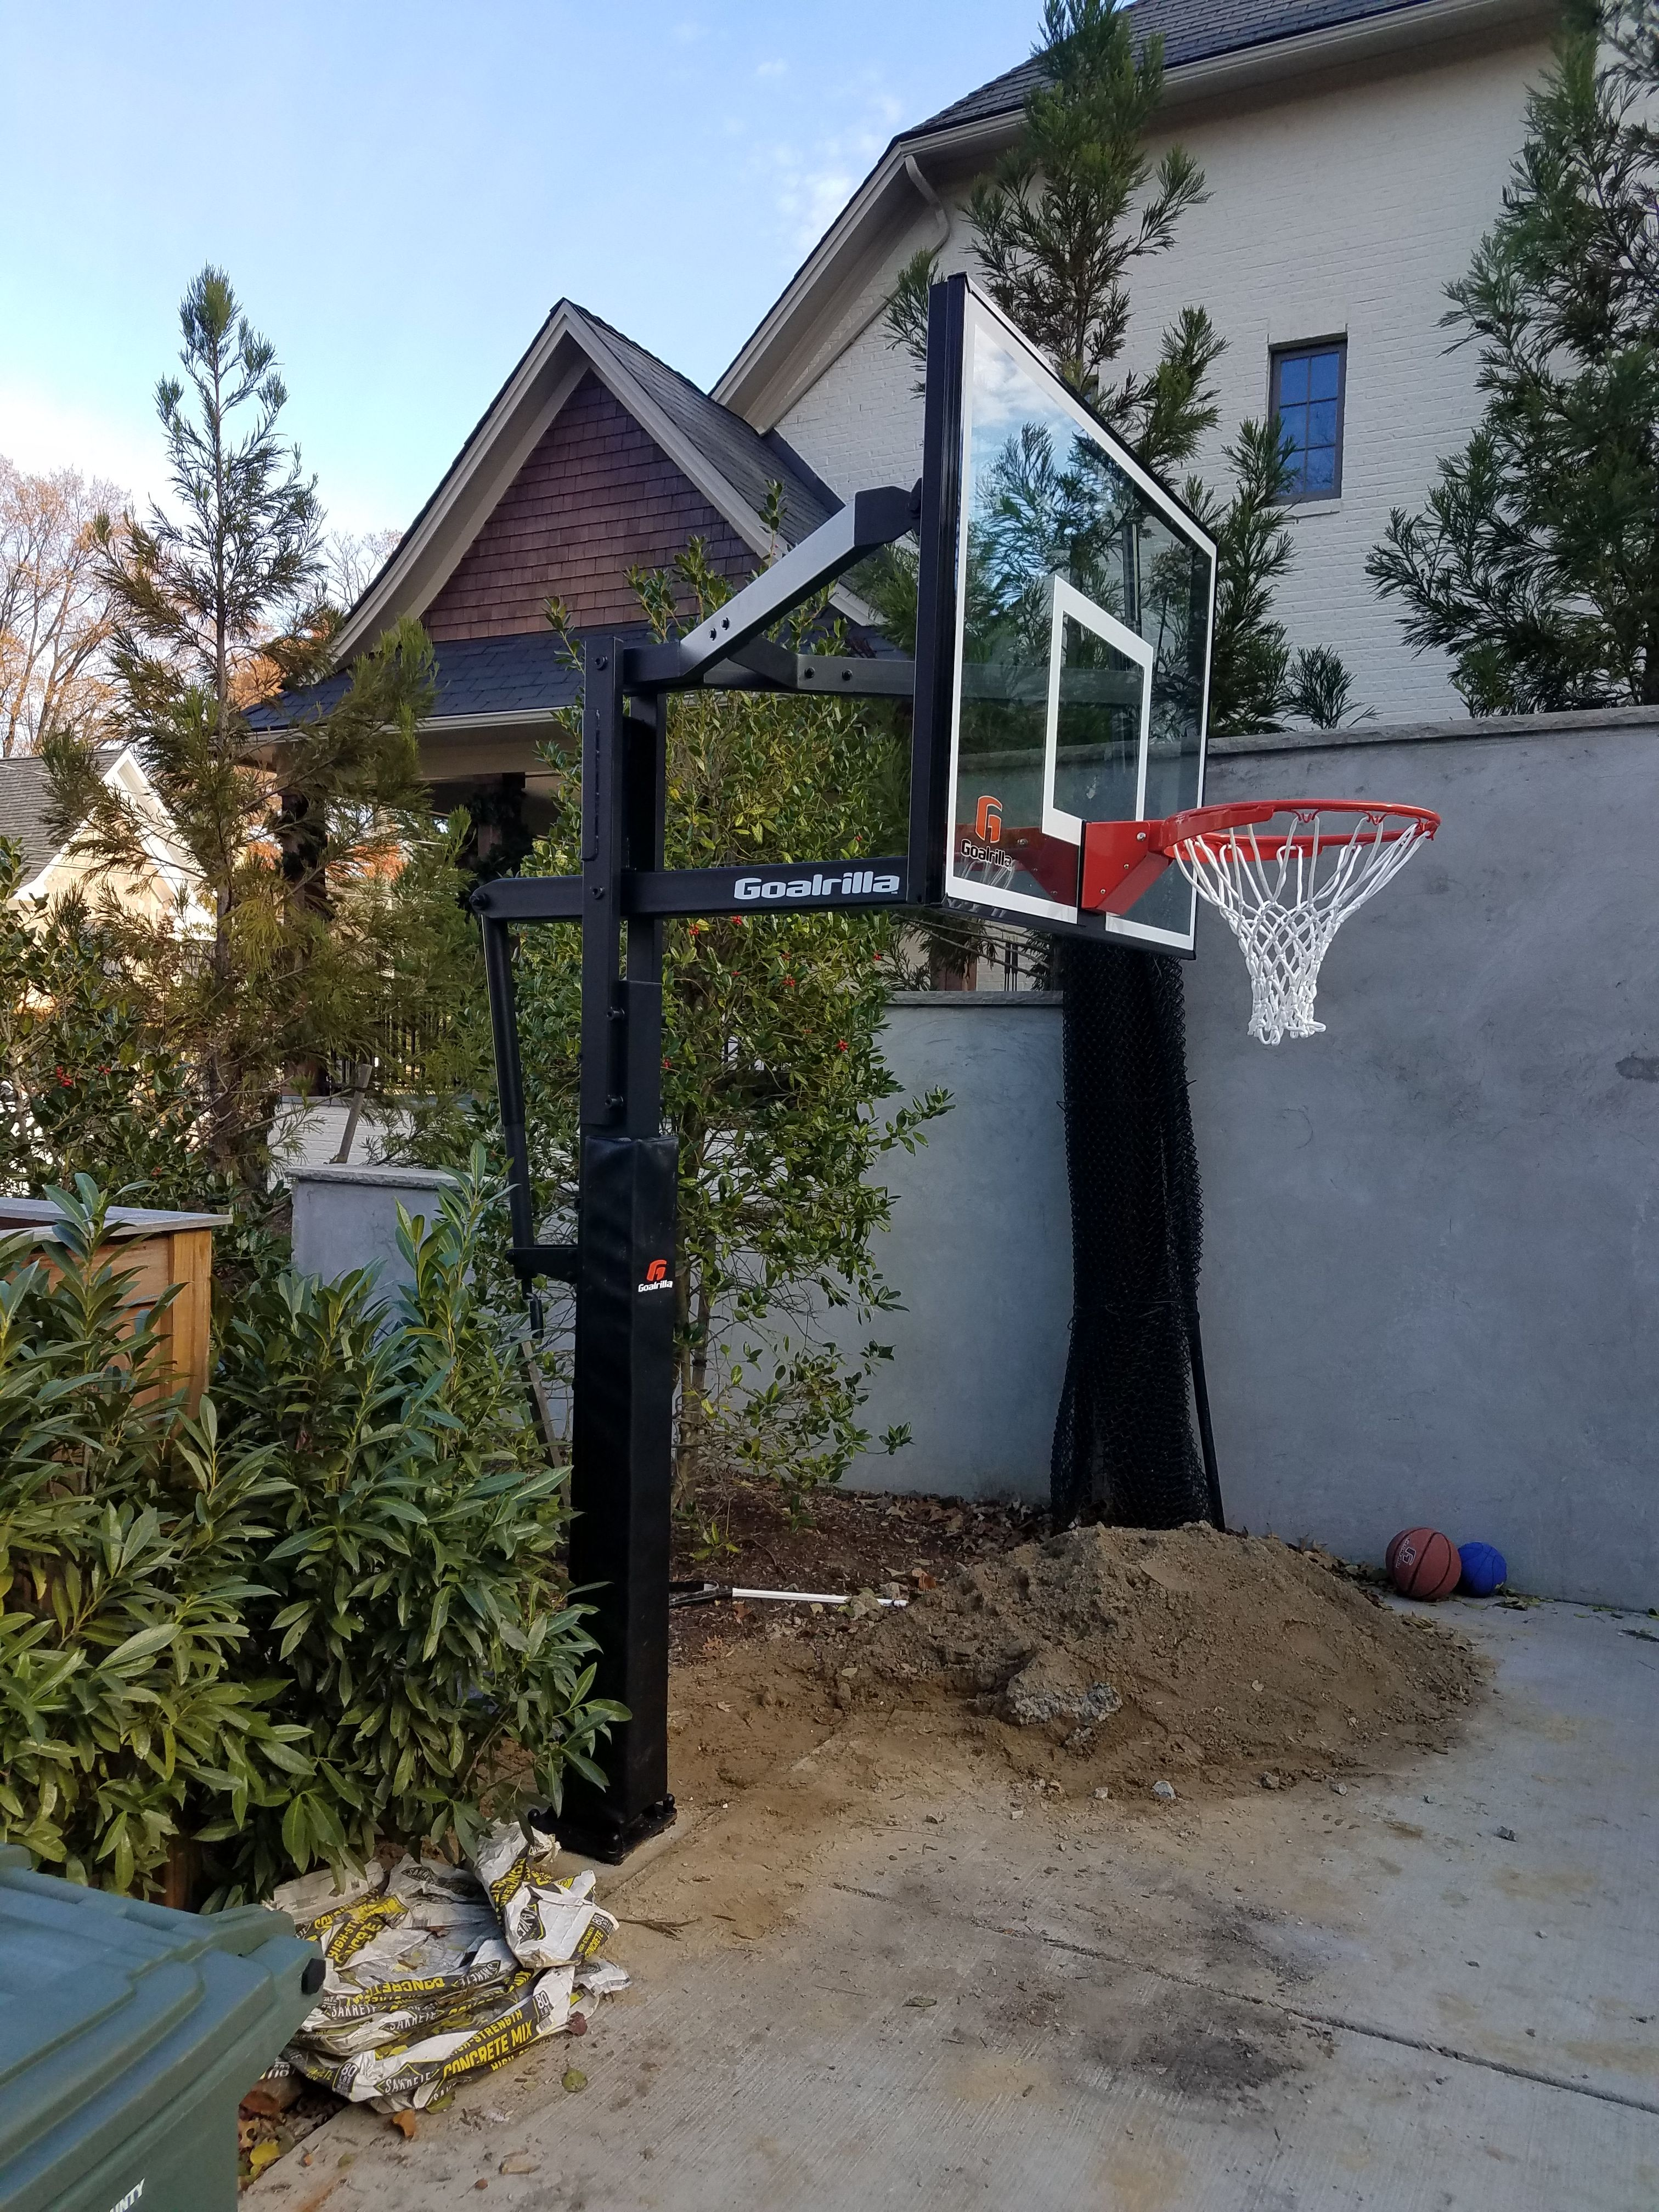 Basketball Hoop Assemblers Call 240 764 6143 In Frederick By Furniture Assembly Experts In 2021 Portable Basketball Hoop Basketball Hoop Lifetime Basketball Hoop